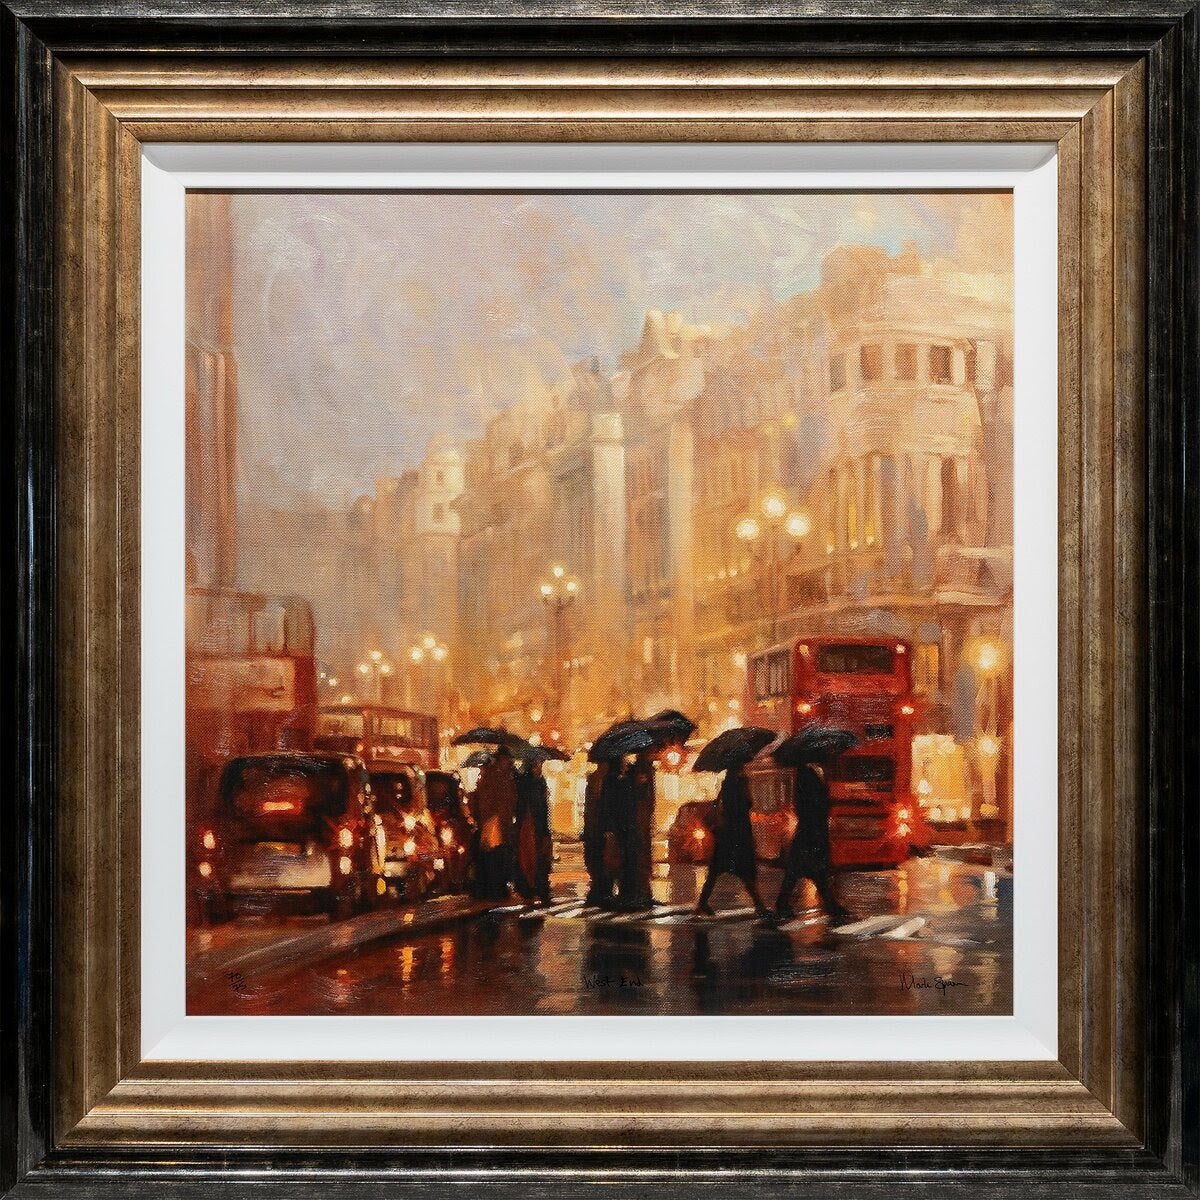 West End limited edition print by Mark Spain